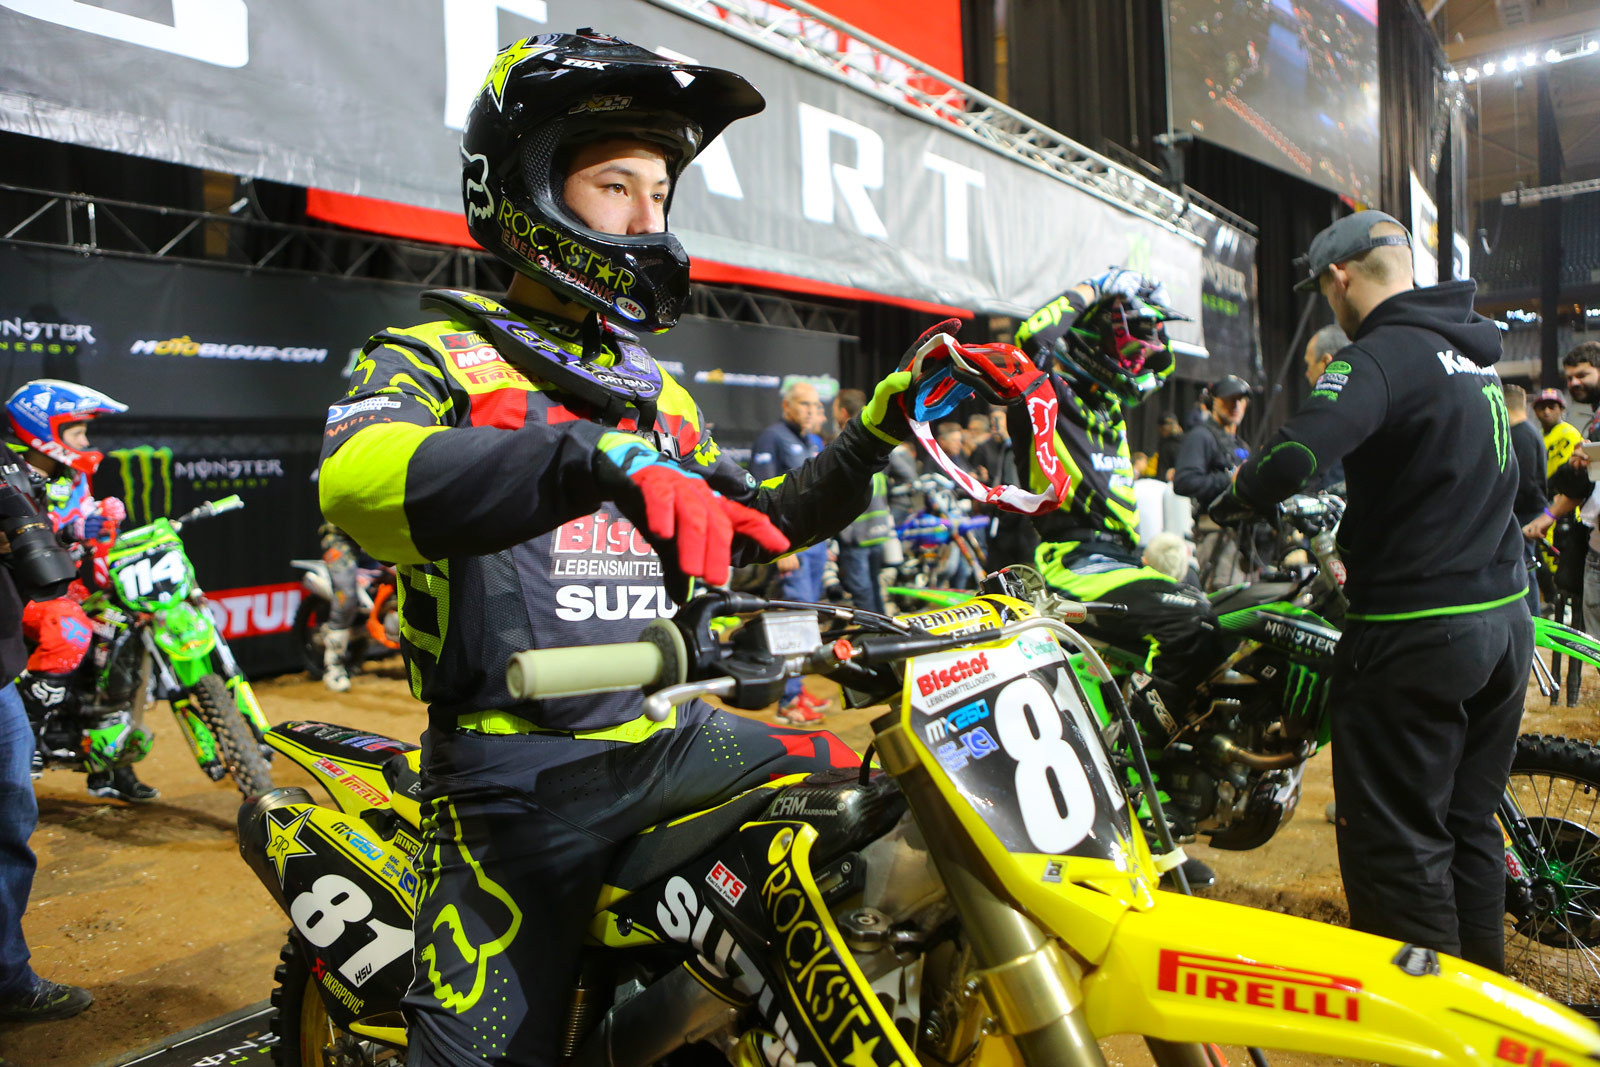 Brian Hsu - Supercross Paris-Lille: Press Day - Motocross Pictures - Vital MX